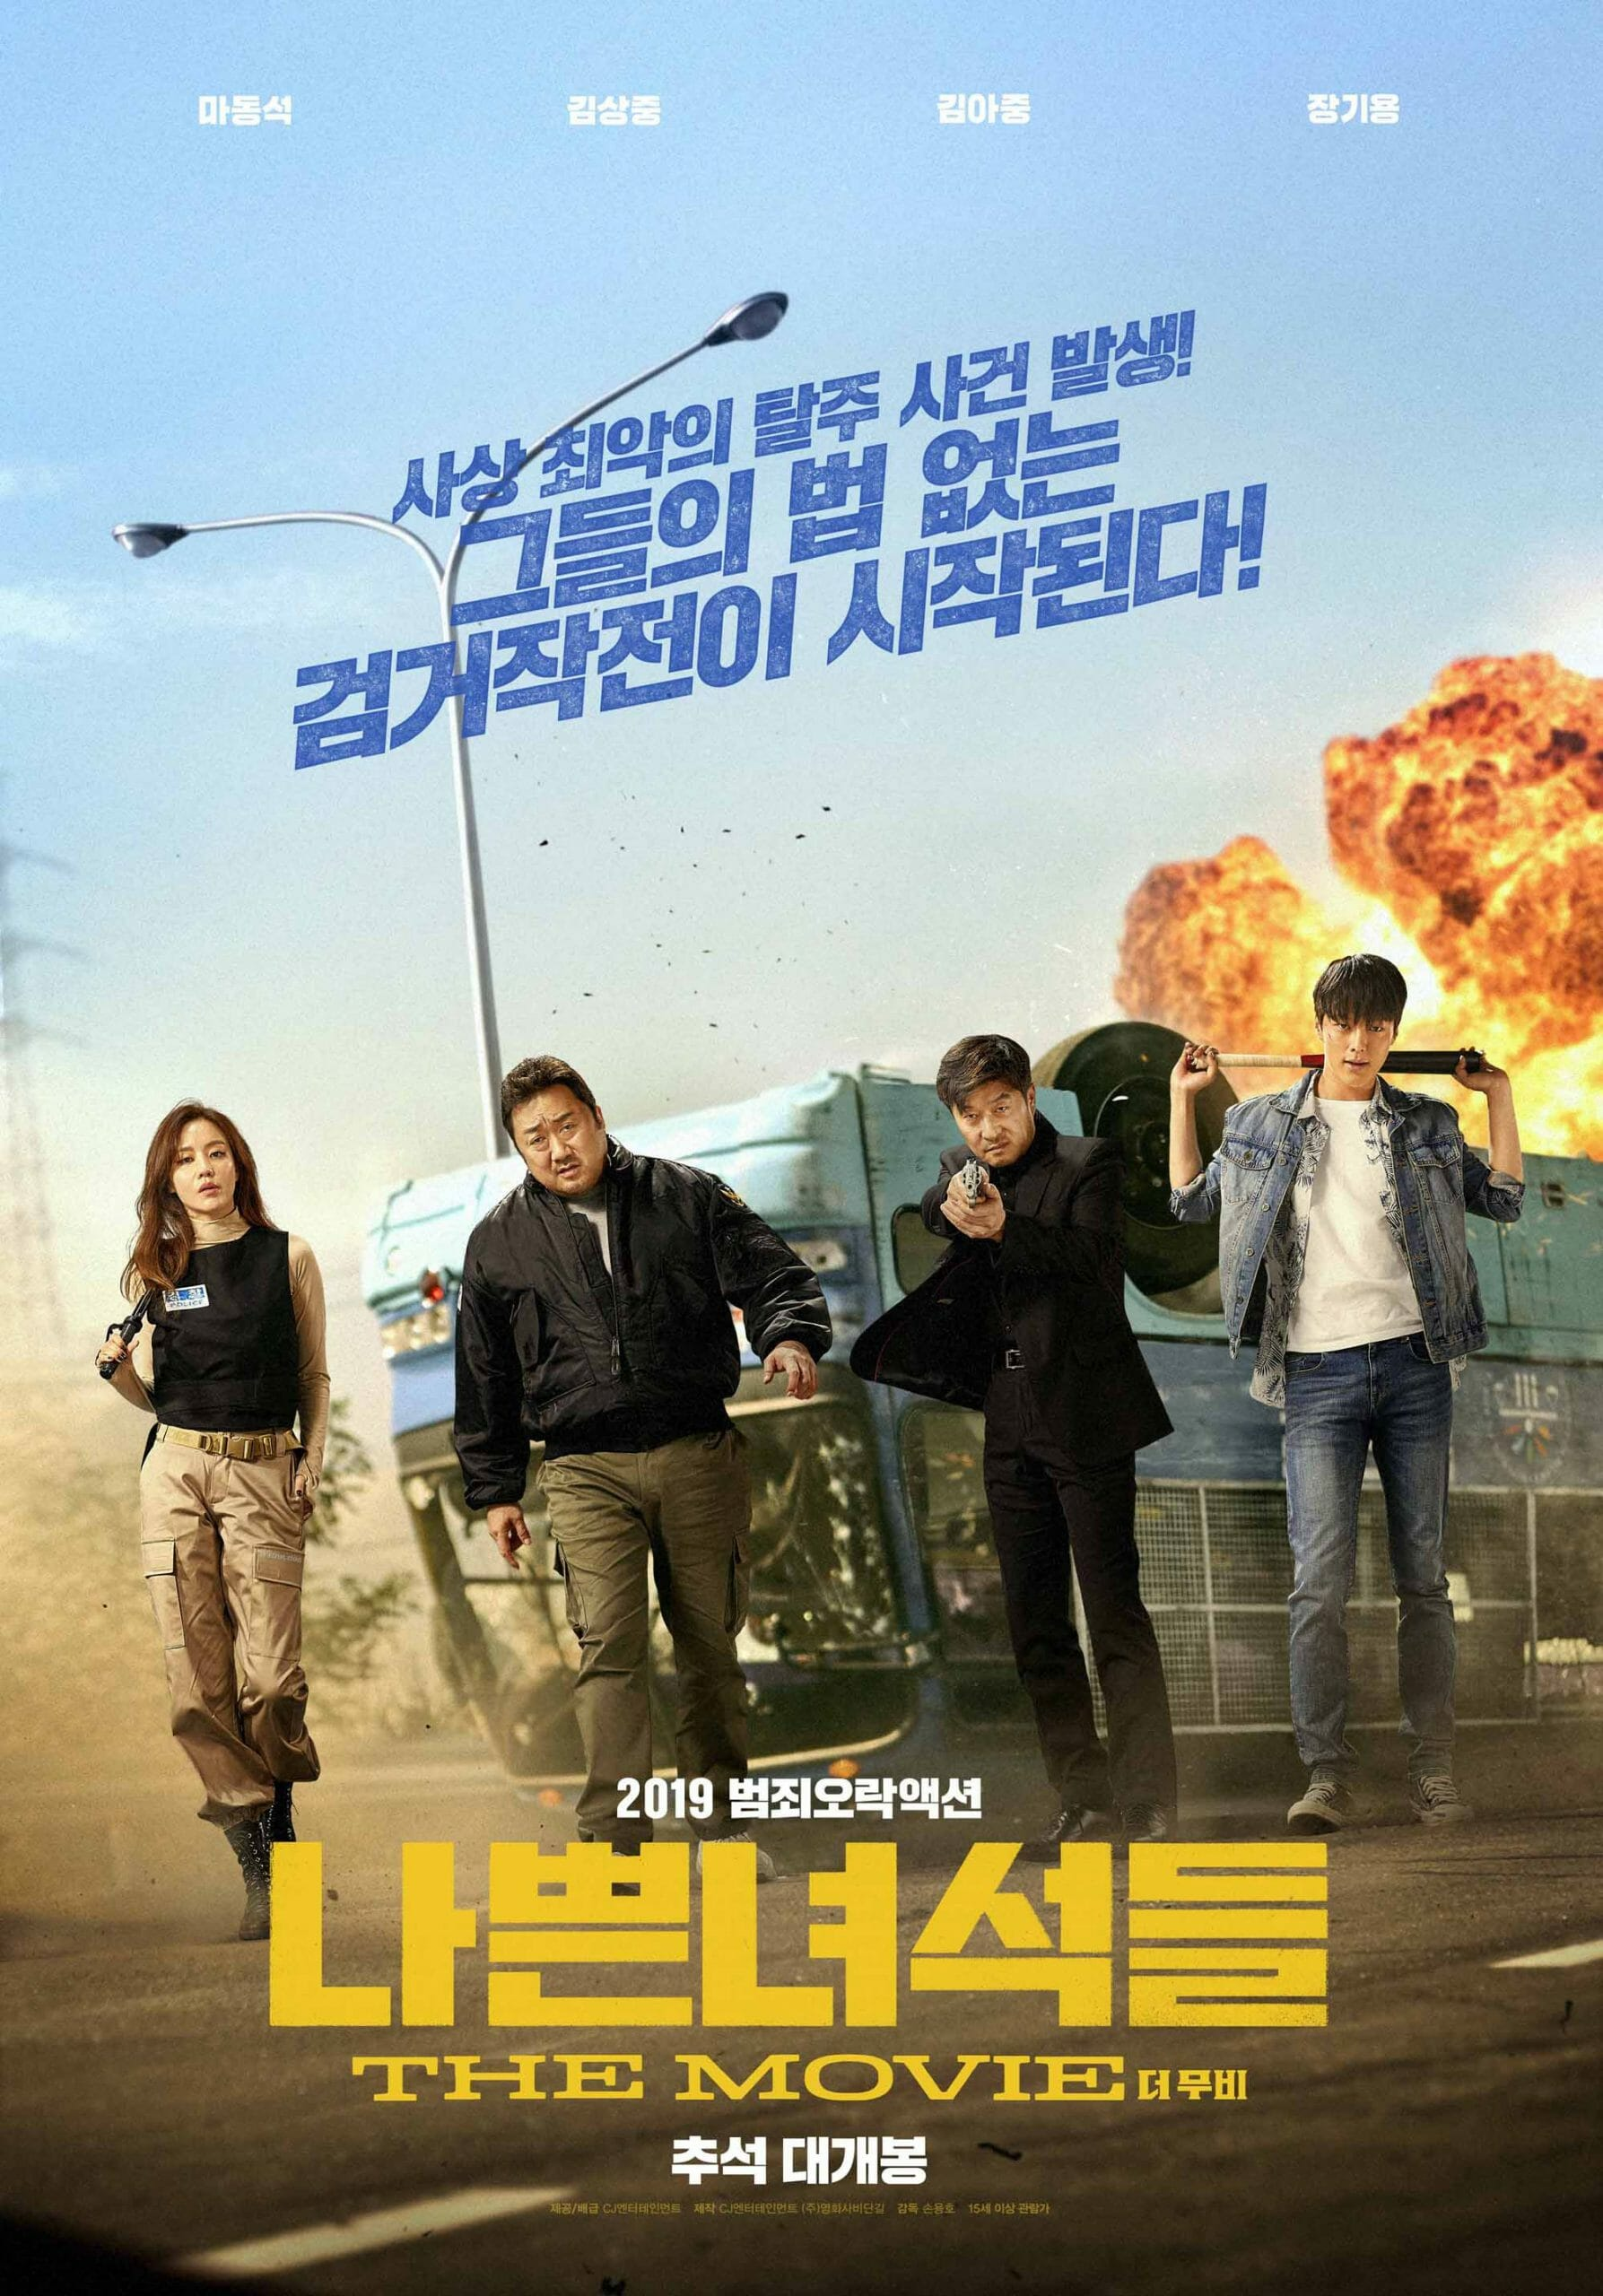 Sinopsis dan Review Film Korea The Bad Guys: Reign of Chaos (2019)